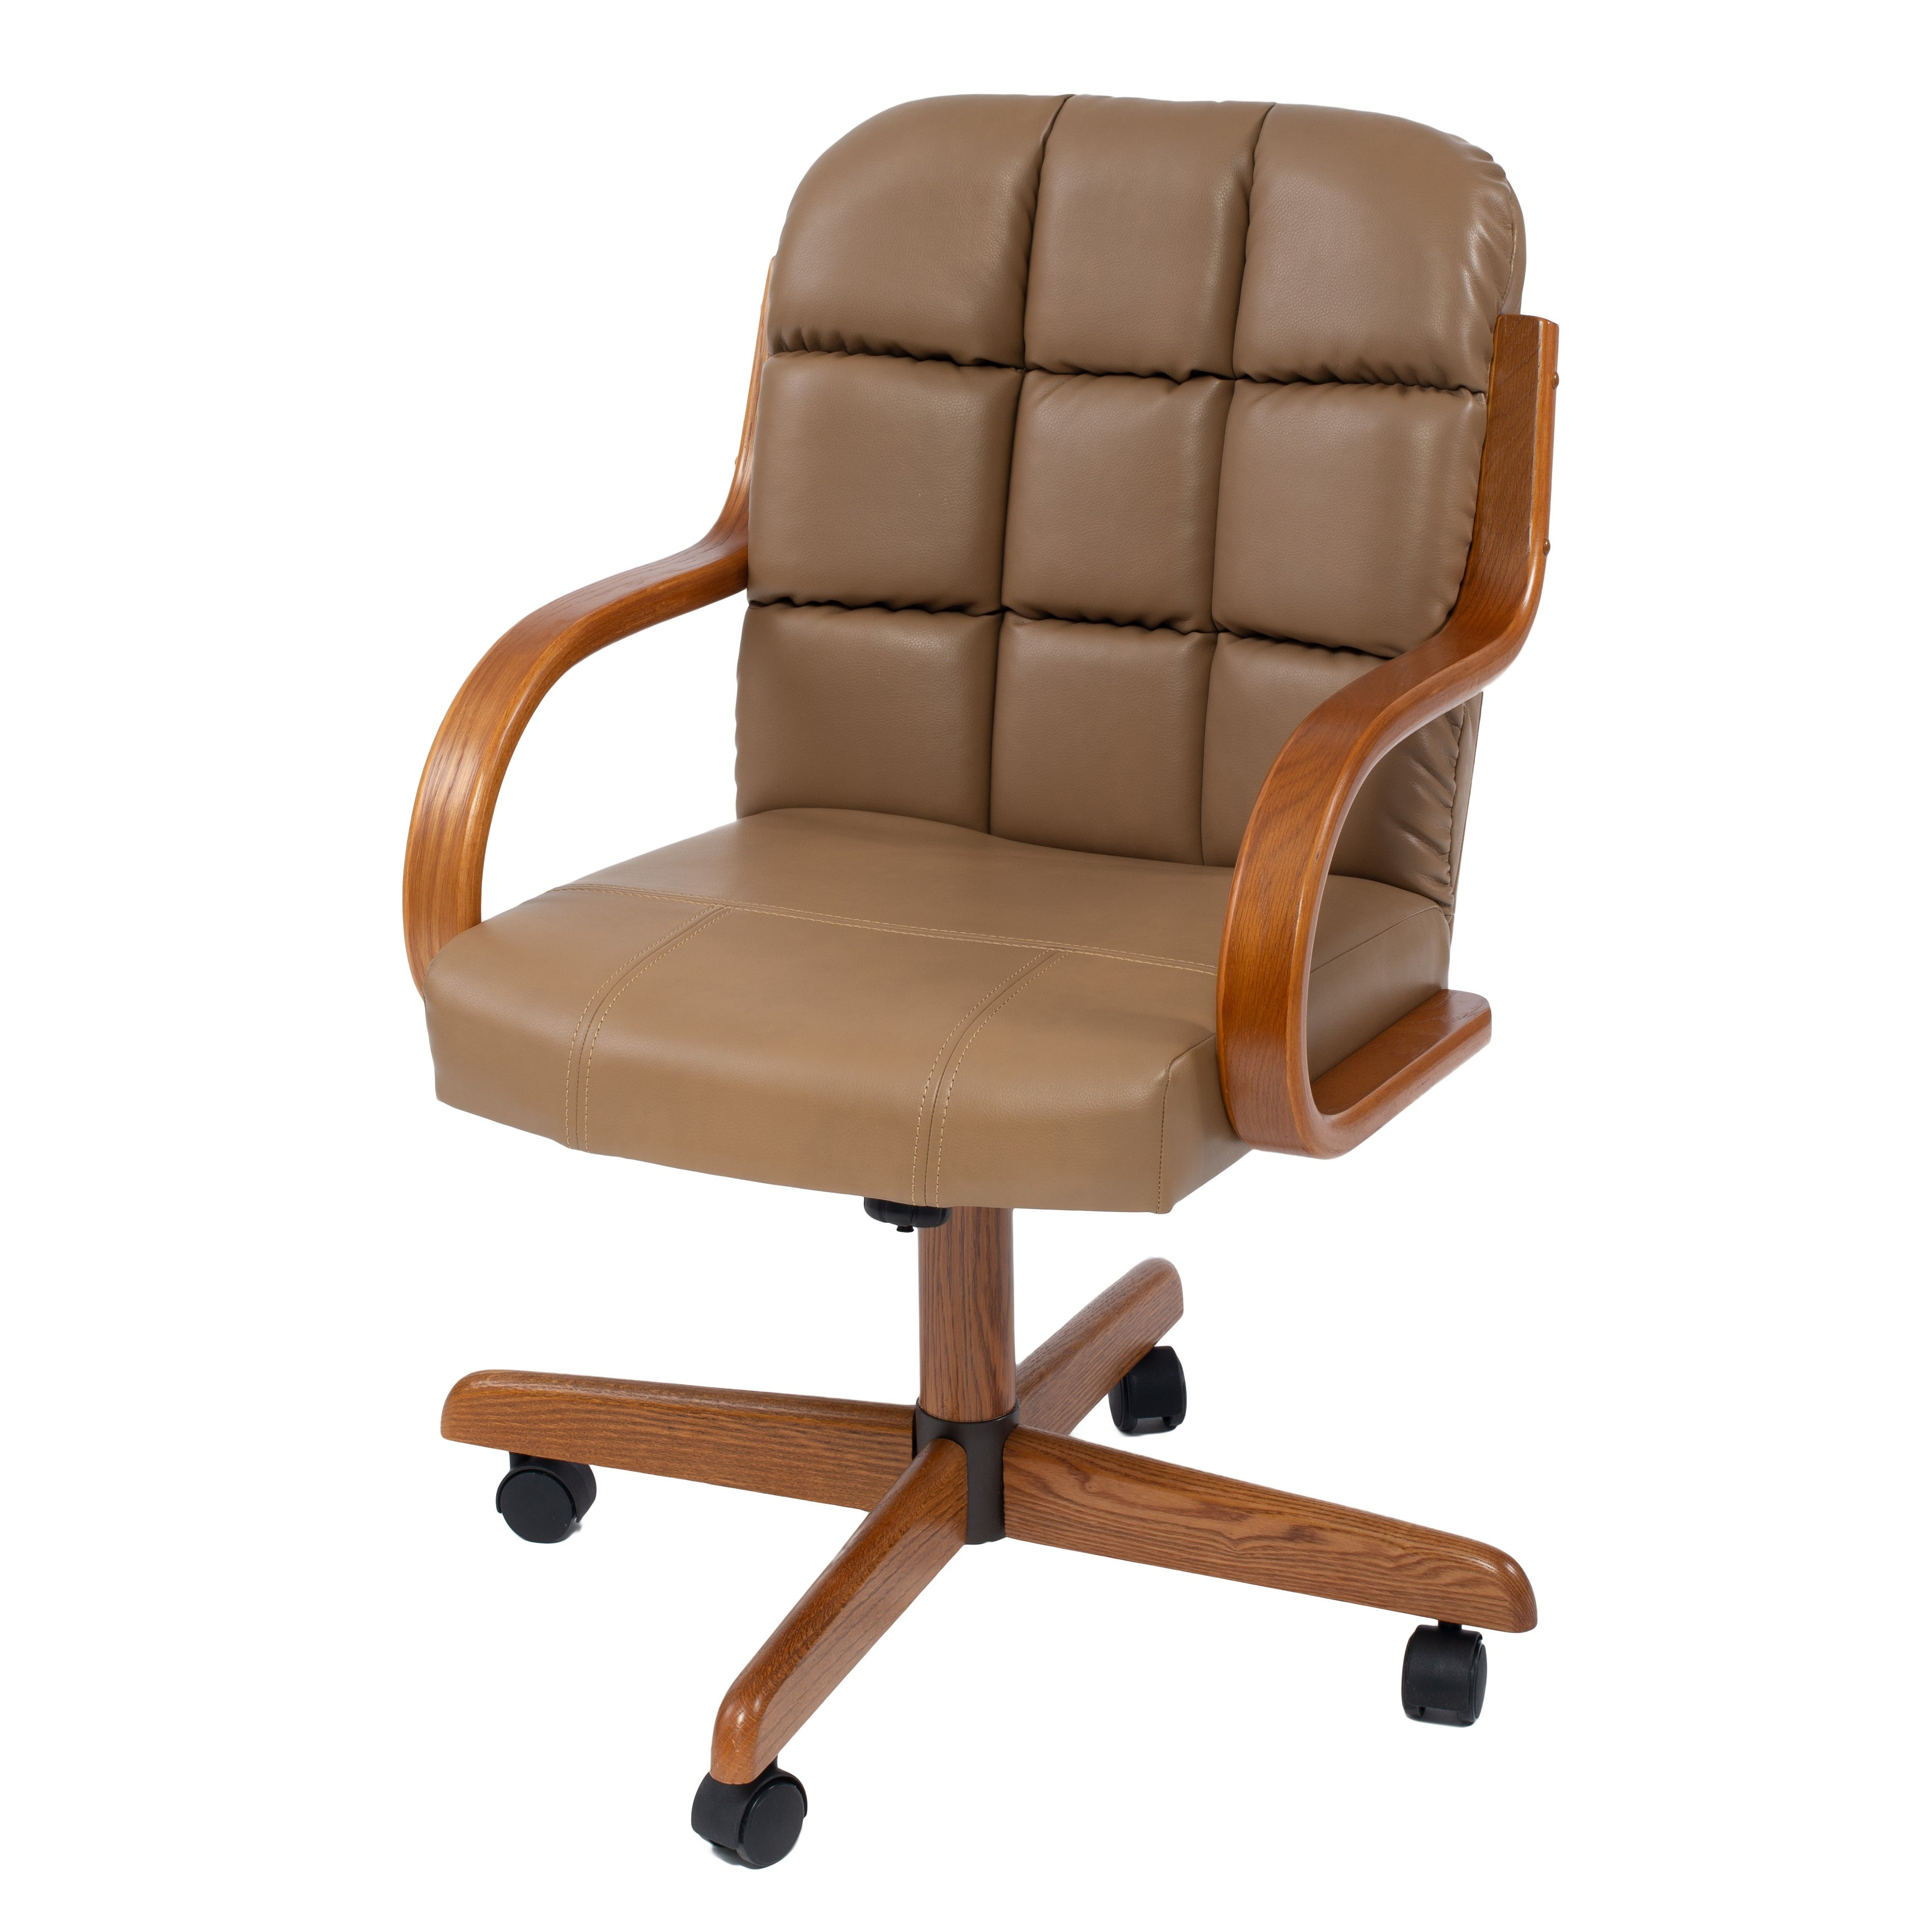 Solid Wood Rolling Caster Office Chair With Tilt And Cushion Seat 22 5 19 36 5 On Sale Overstock 31417285